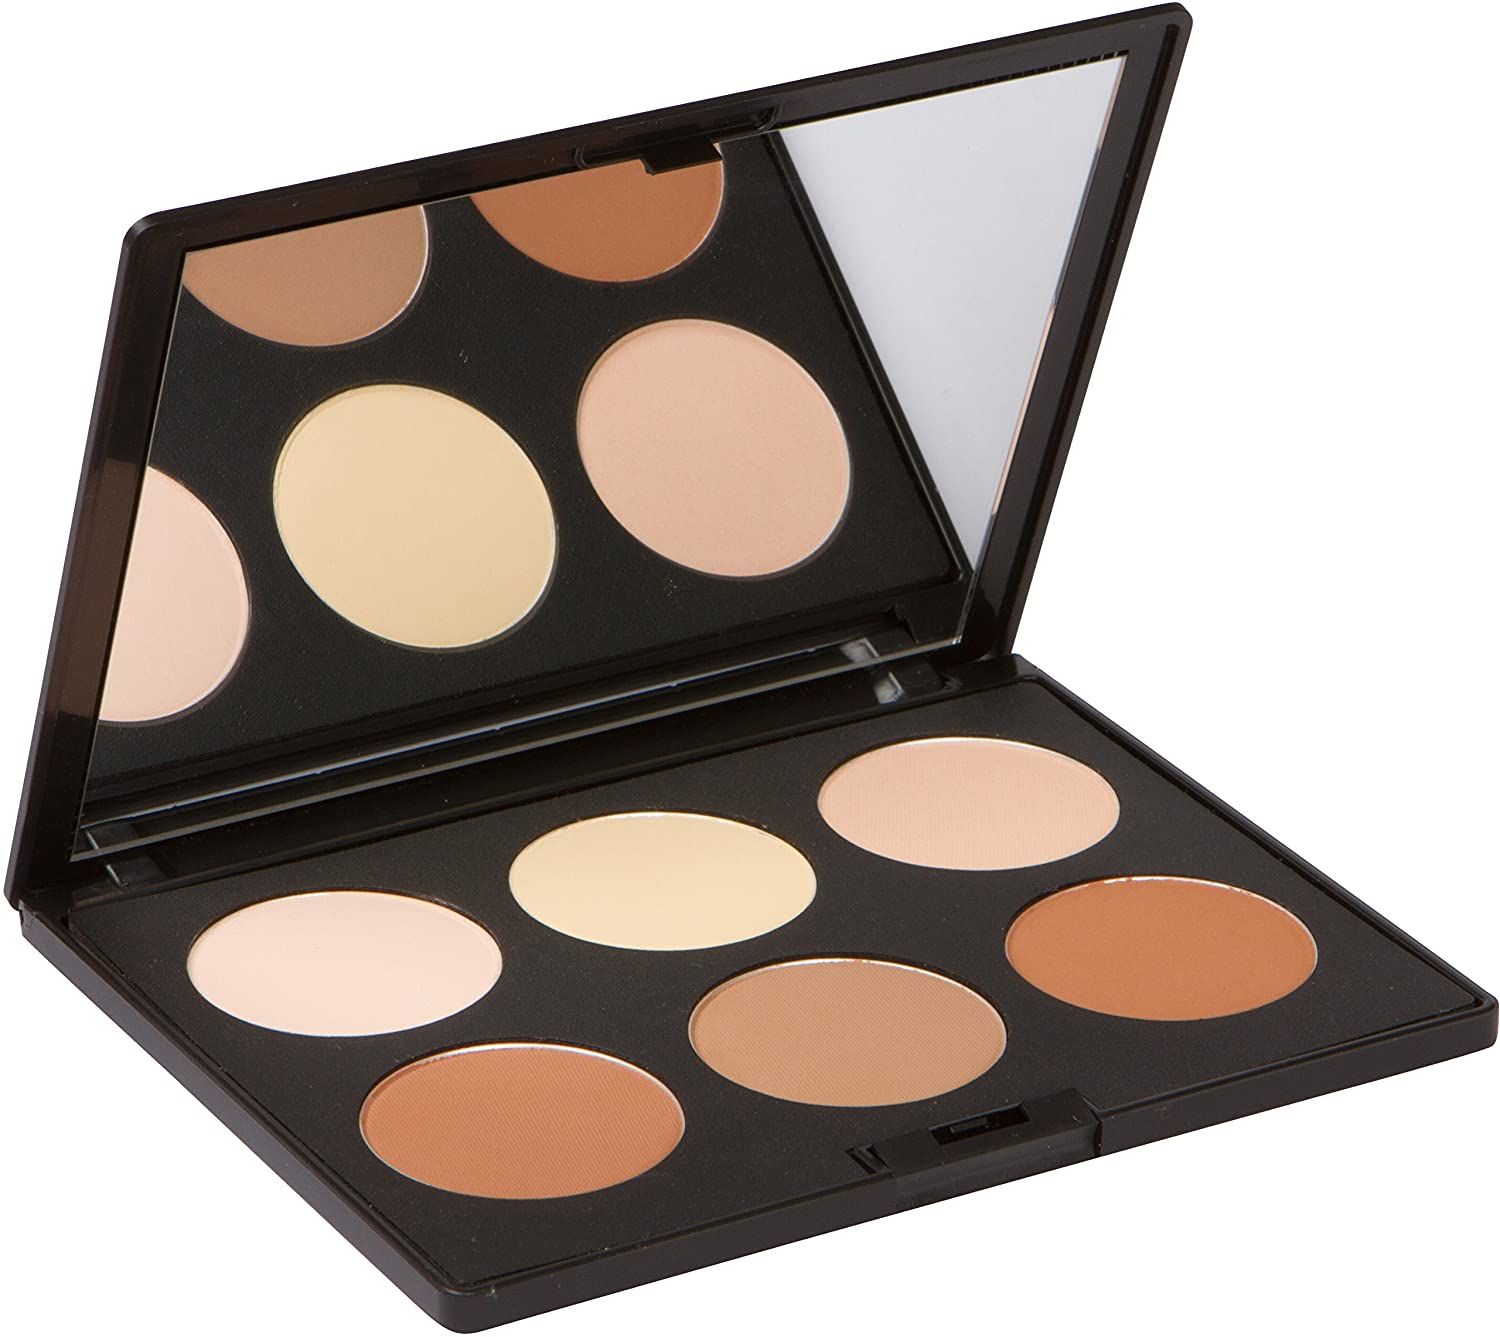 Contour Kit and Highlighting Palette by Elizabeth Mott